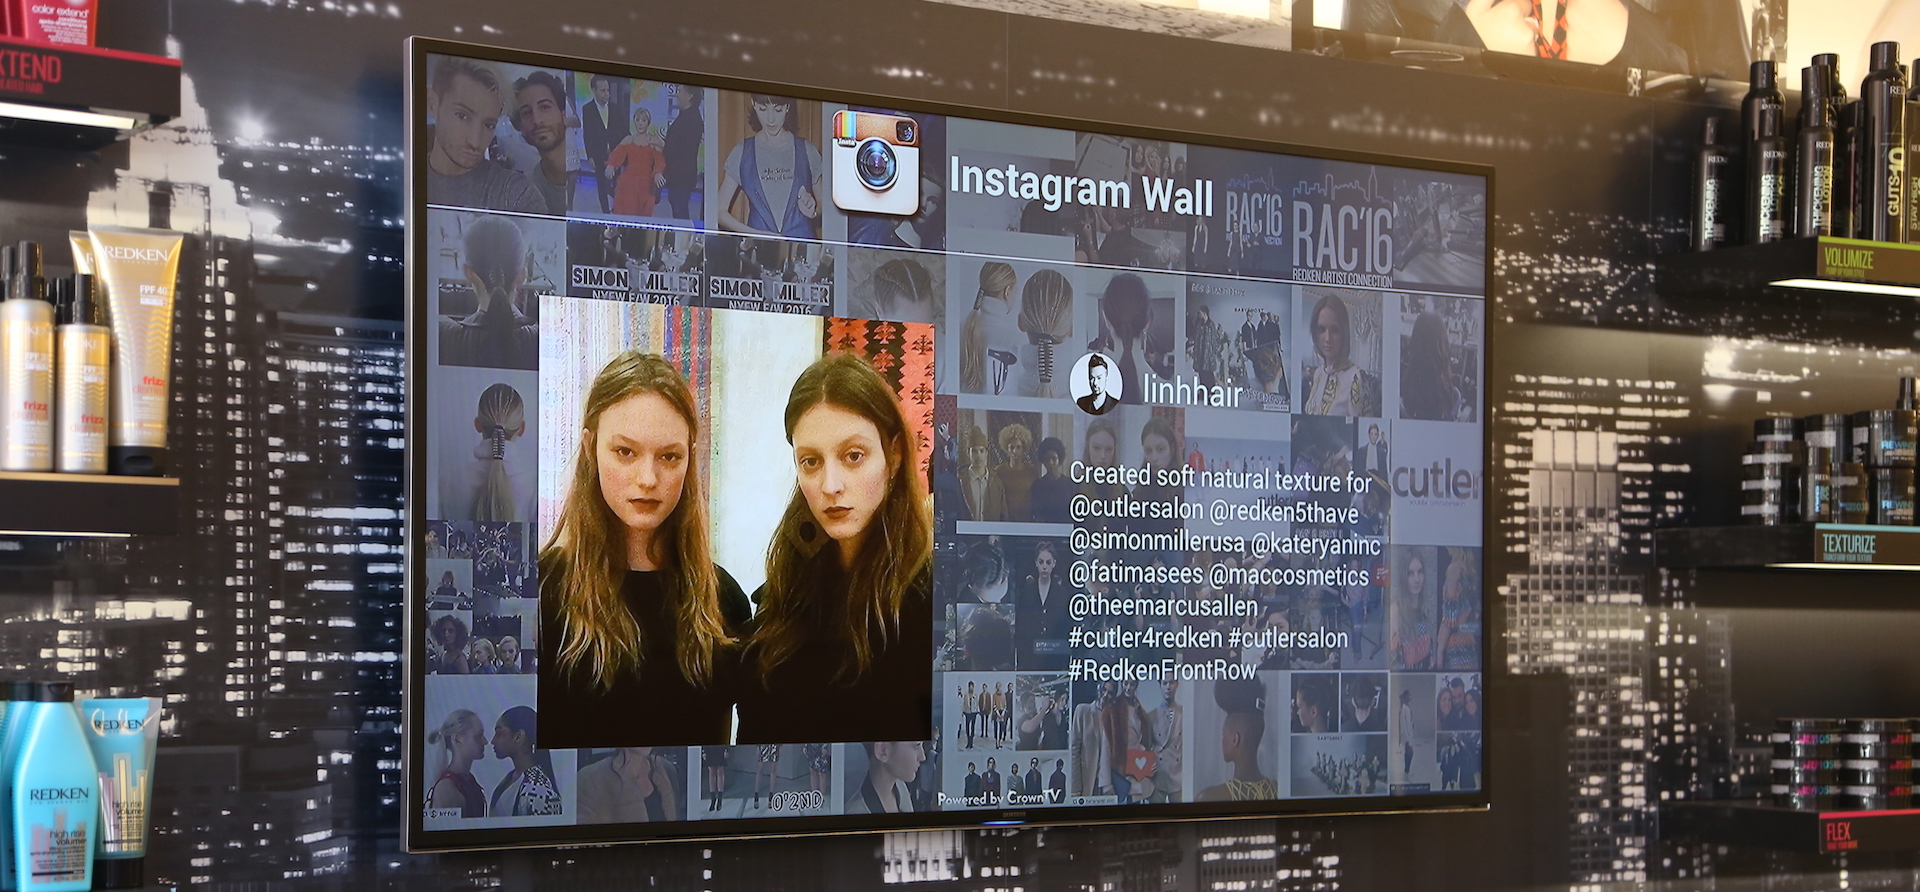 instagram digital signage, instagram wall, hashtag wall